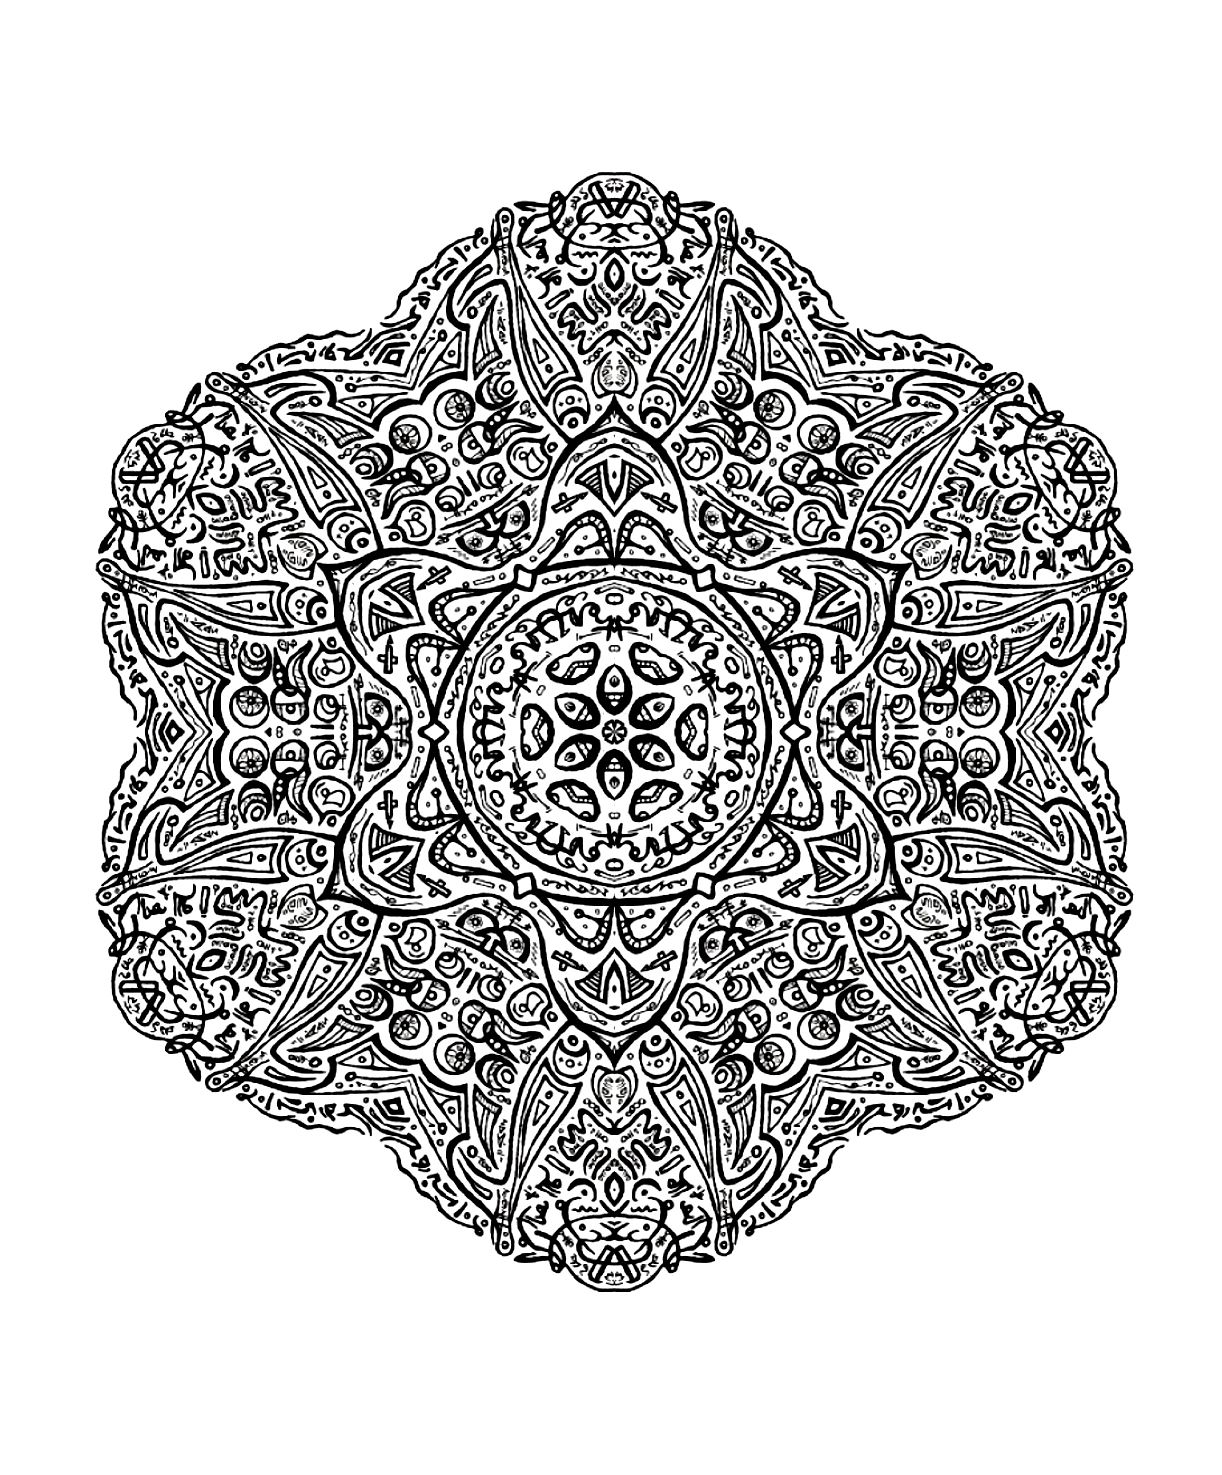 Mandala to color very difficult 2 - Very difficult Mandalas (for ...